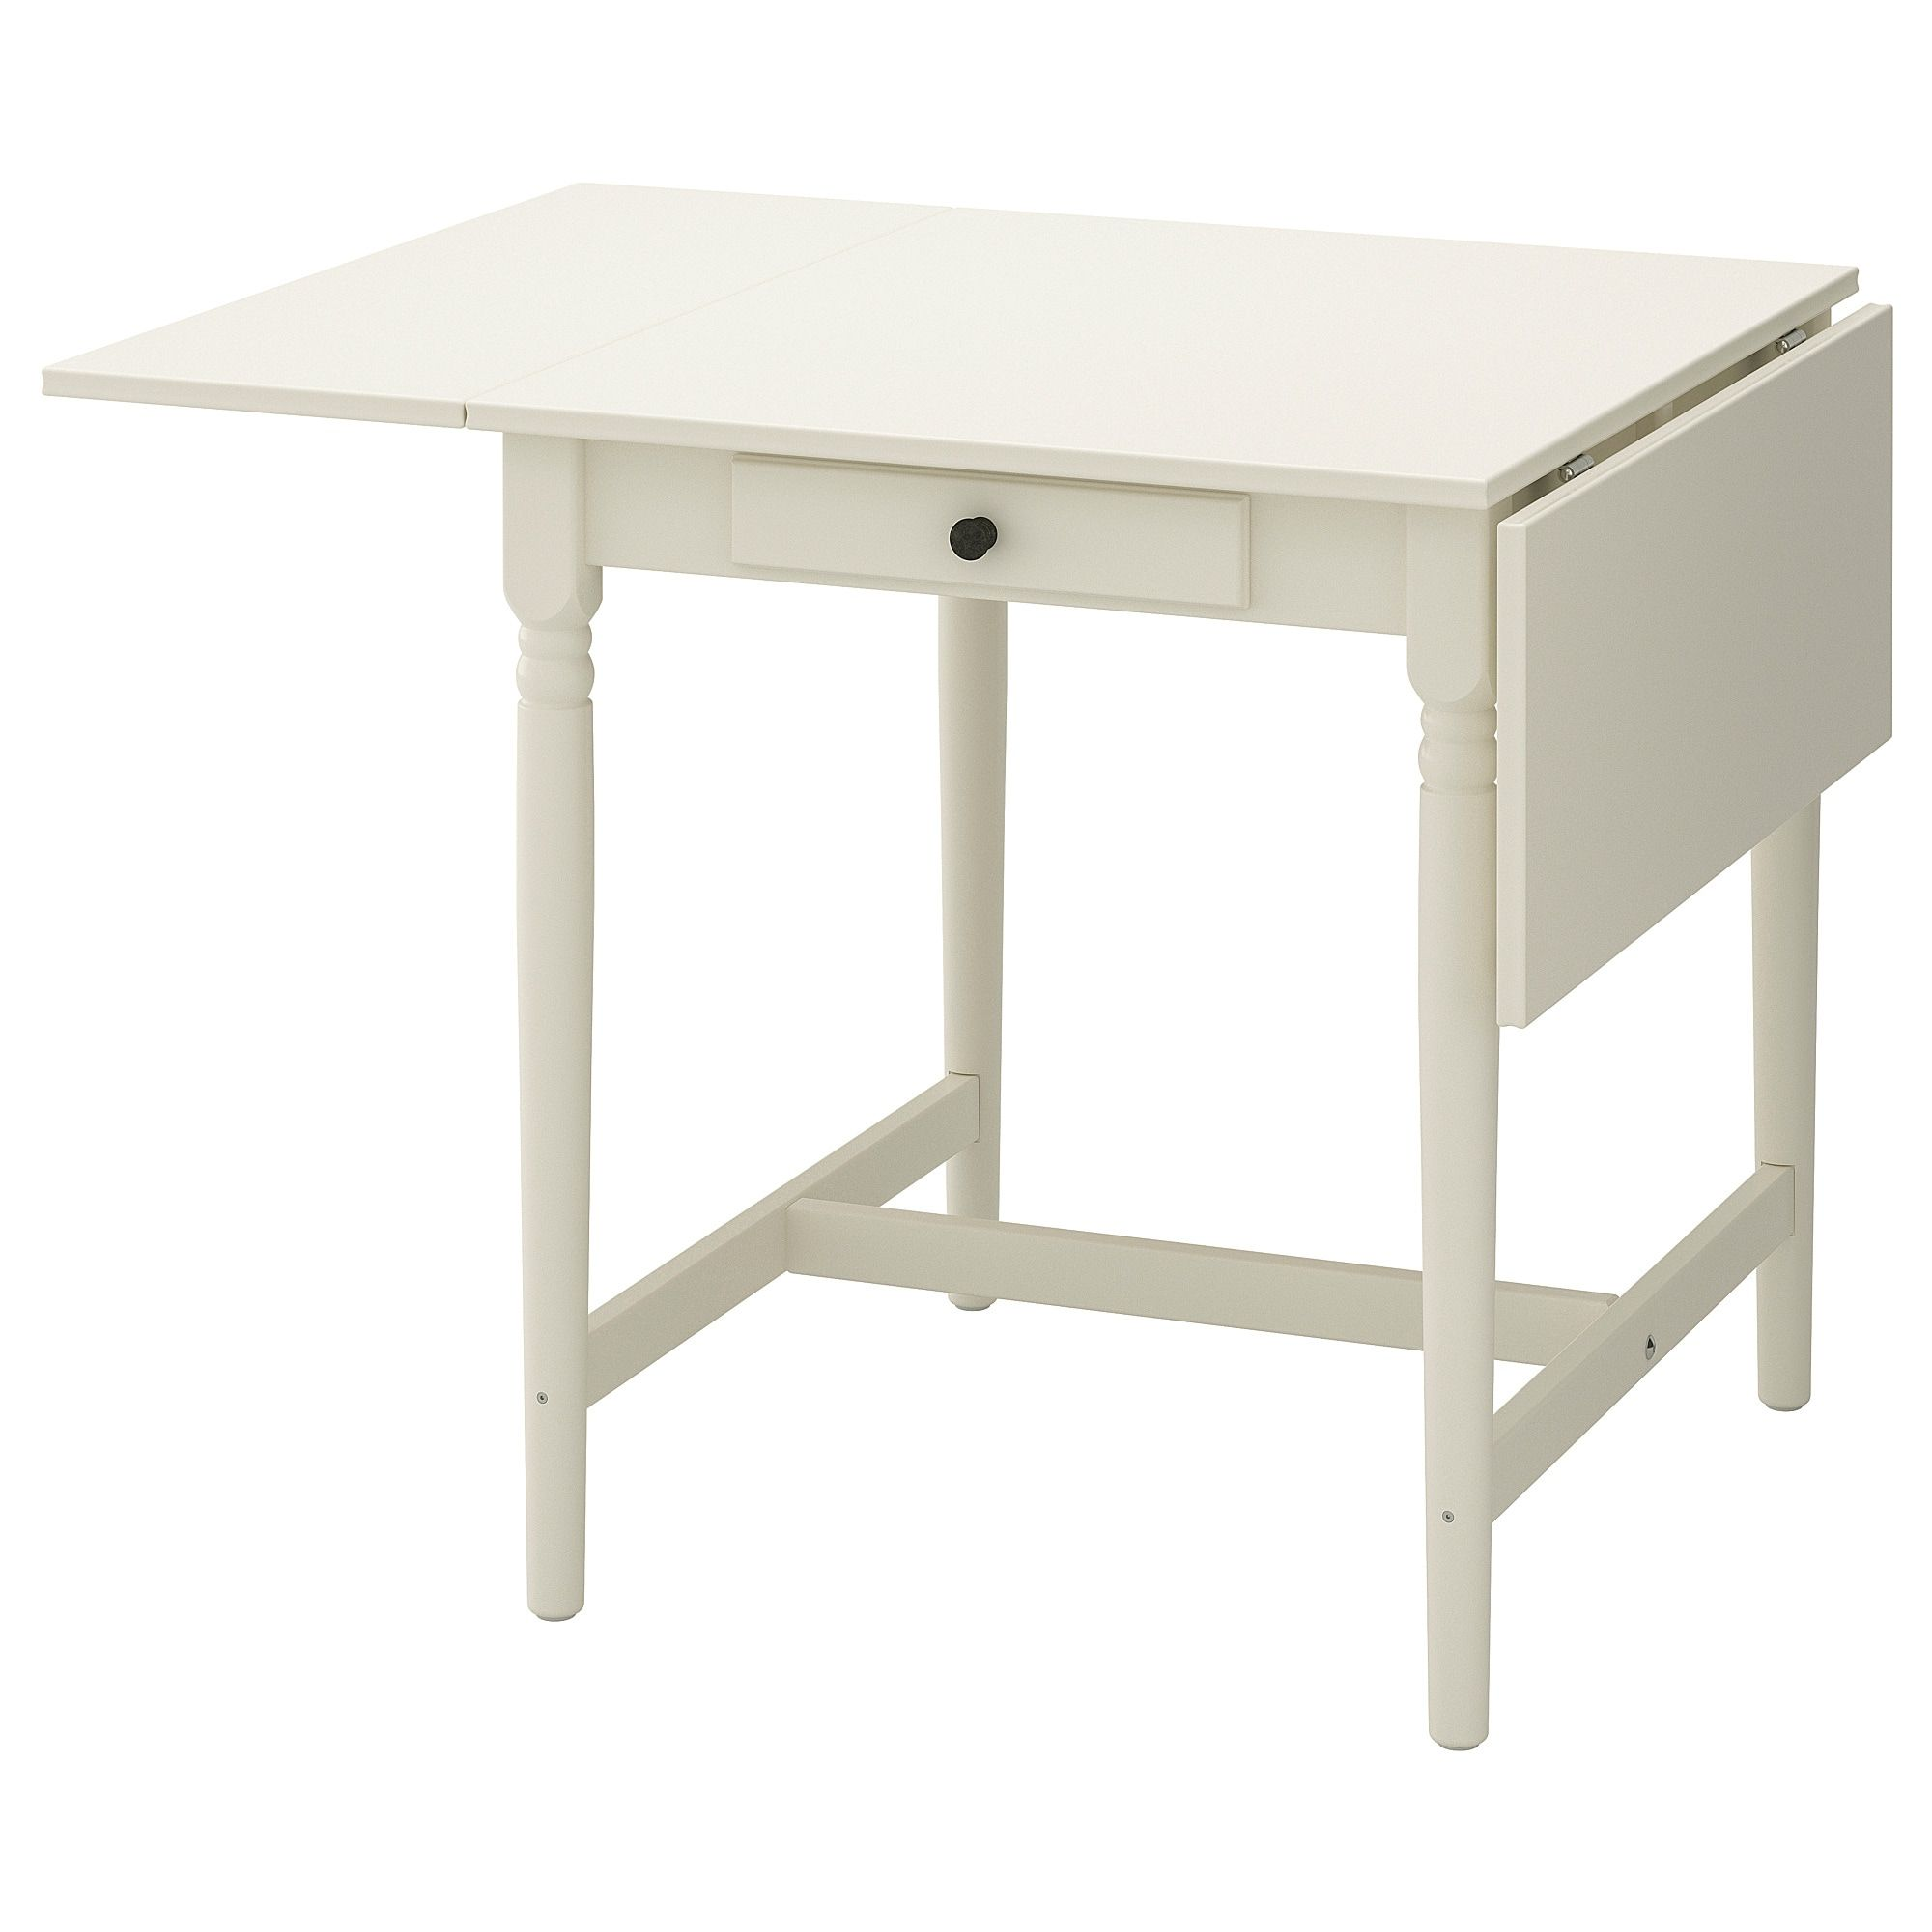 Ikea Ingatorp White Drop Leaf Table Drop Leaf Table Leaf Table